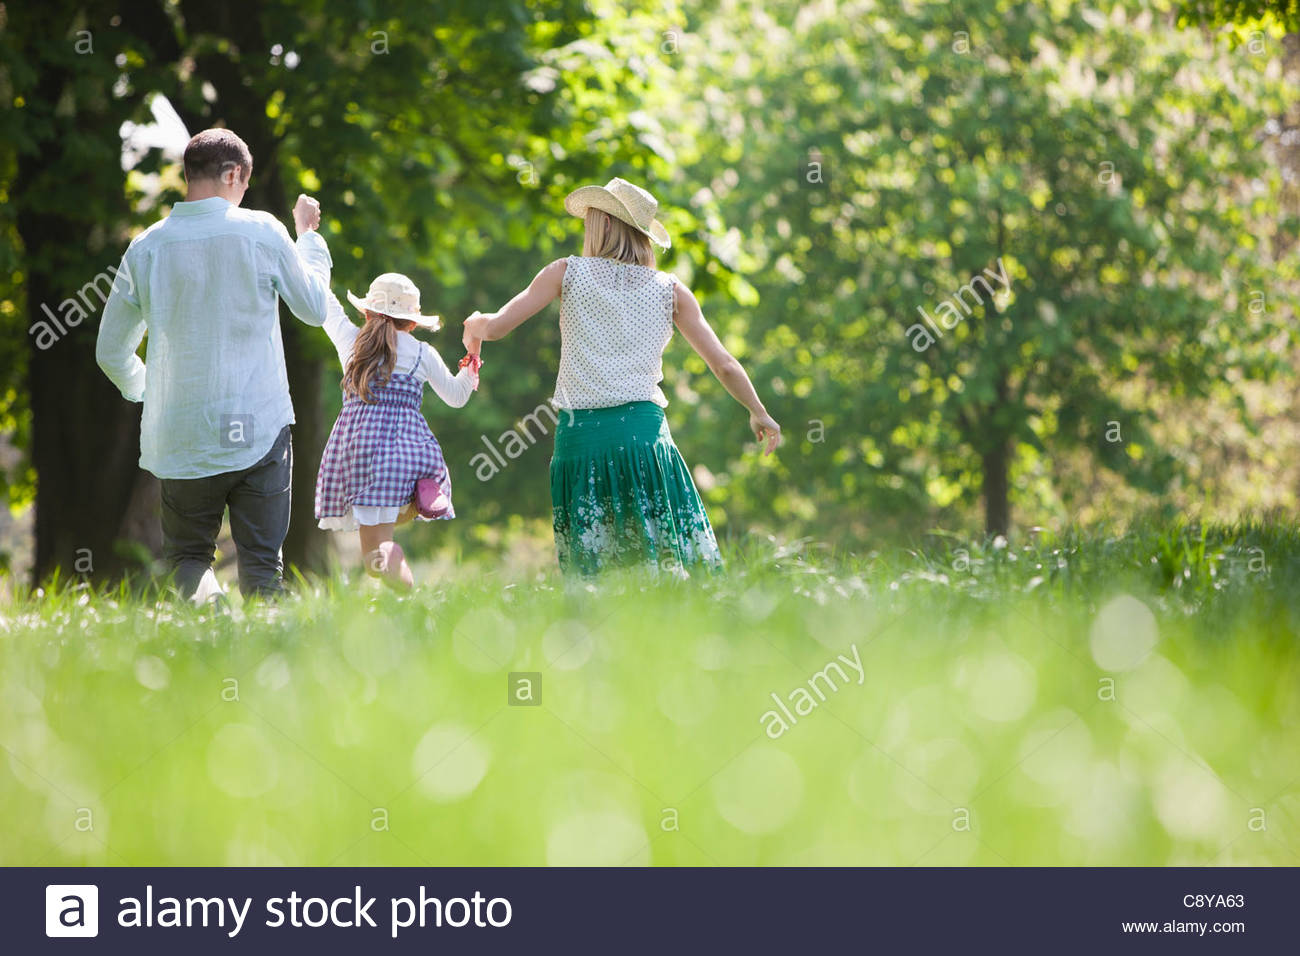 Family walking hand-in-hand in park - Stock Image